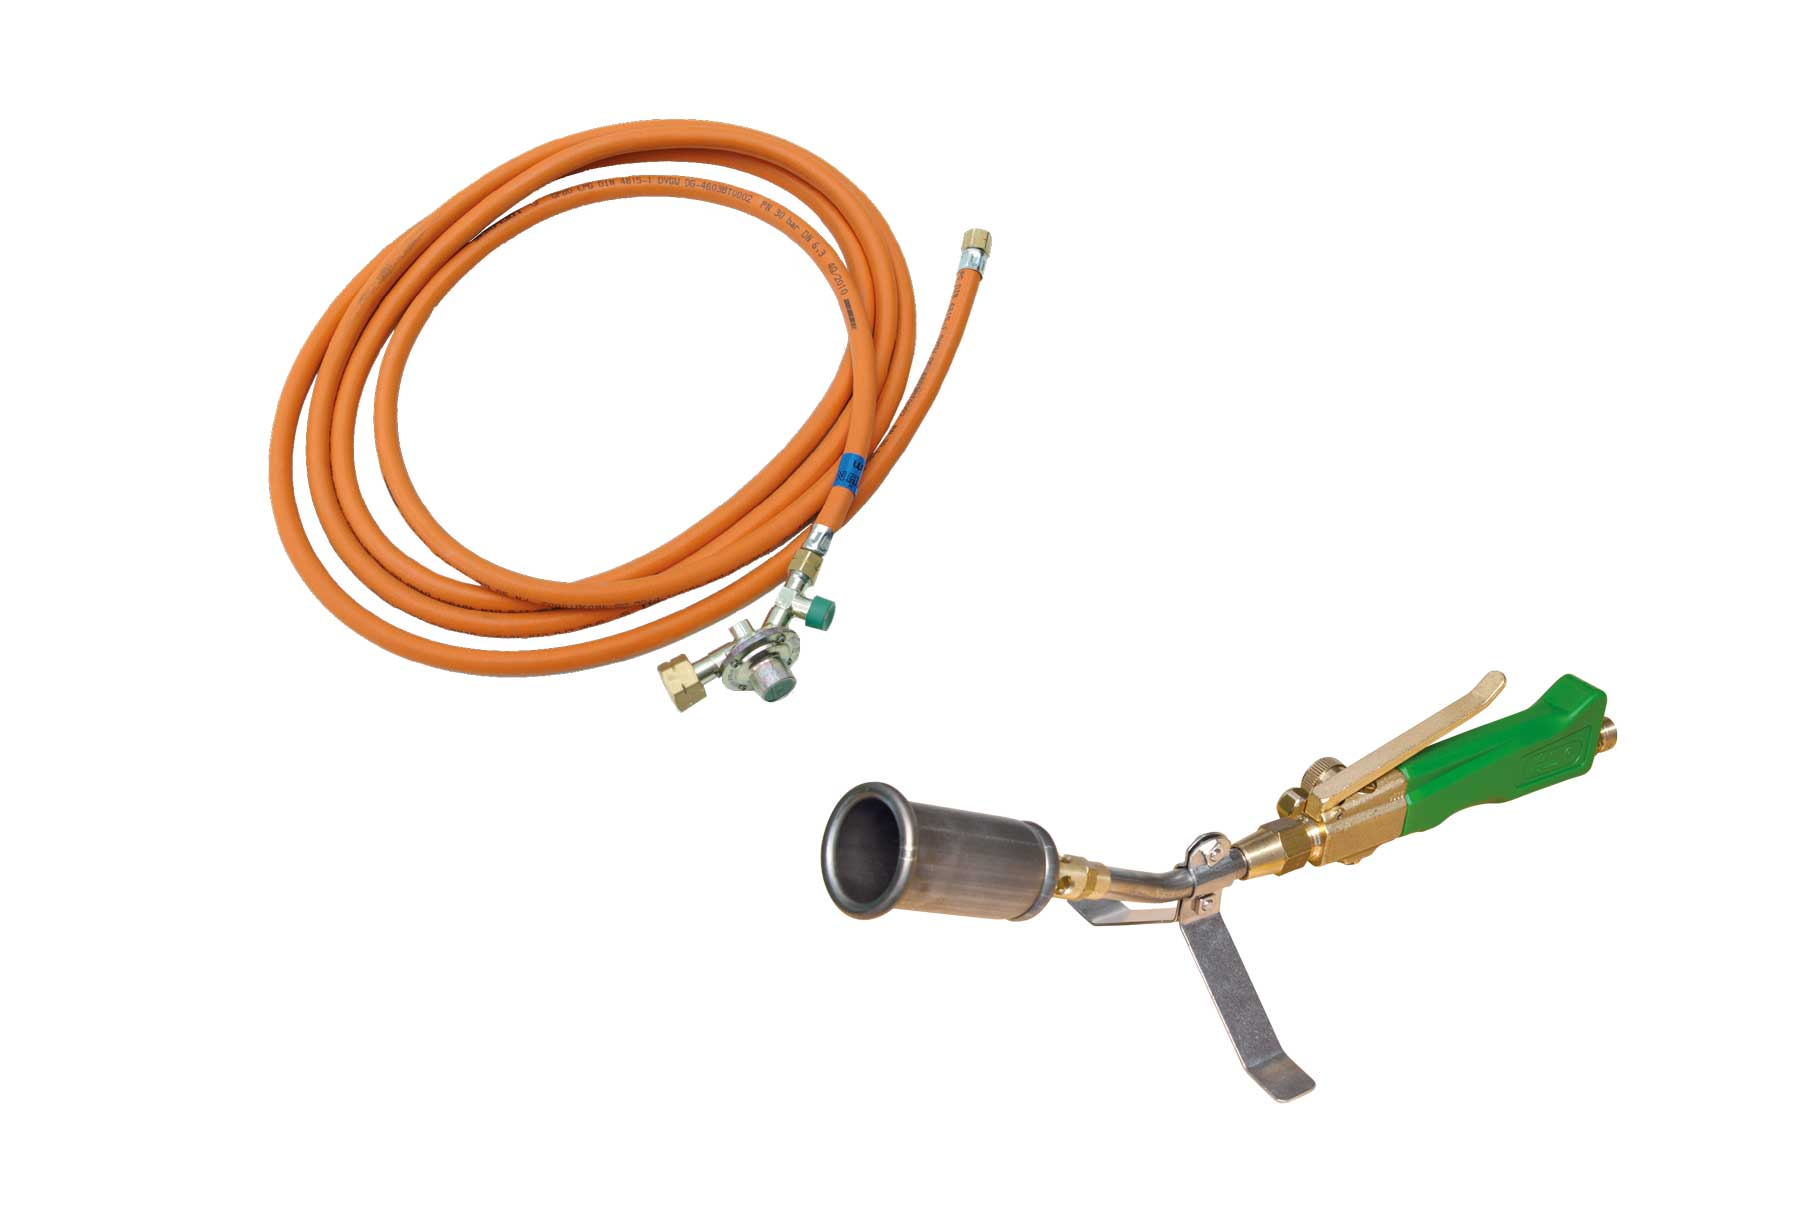 Titan TK 35 Anwärmbrenner mit 5 m HD-Schlauch / Titanium burner for pre-heating TK 35 with 5 m high pressure hose